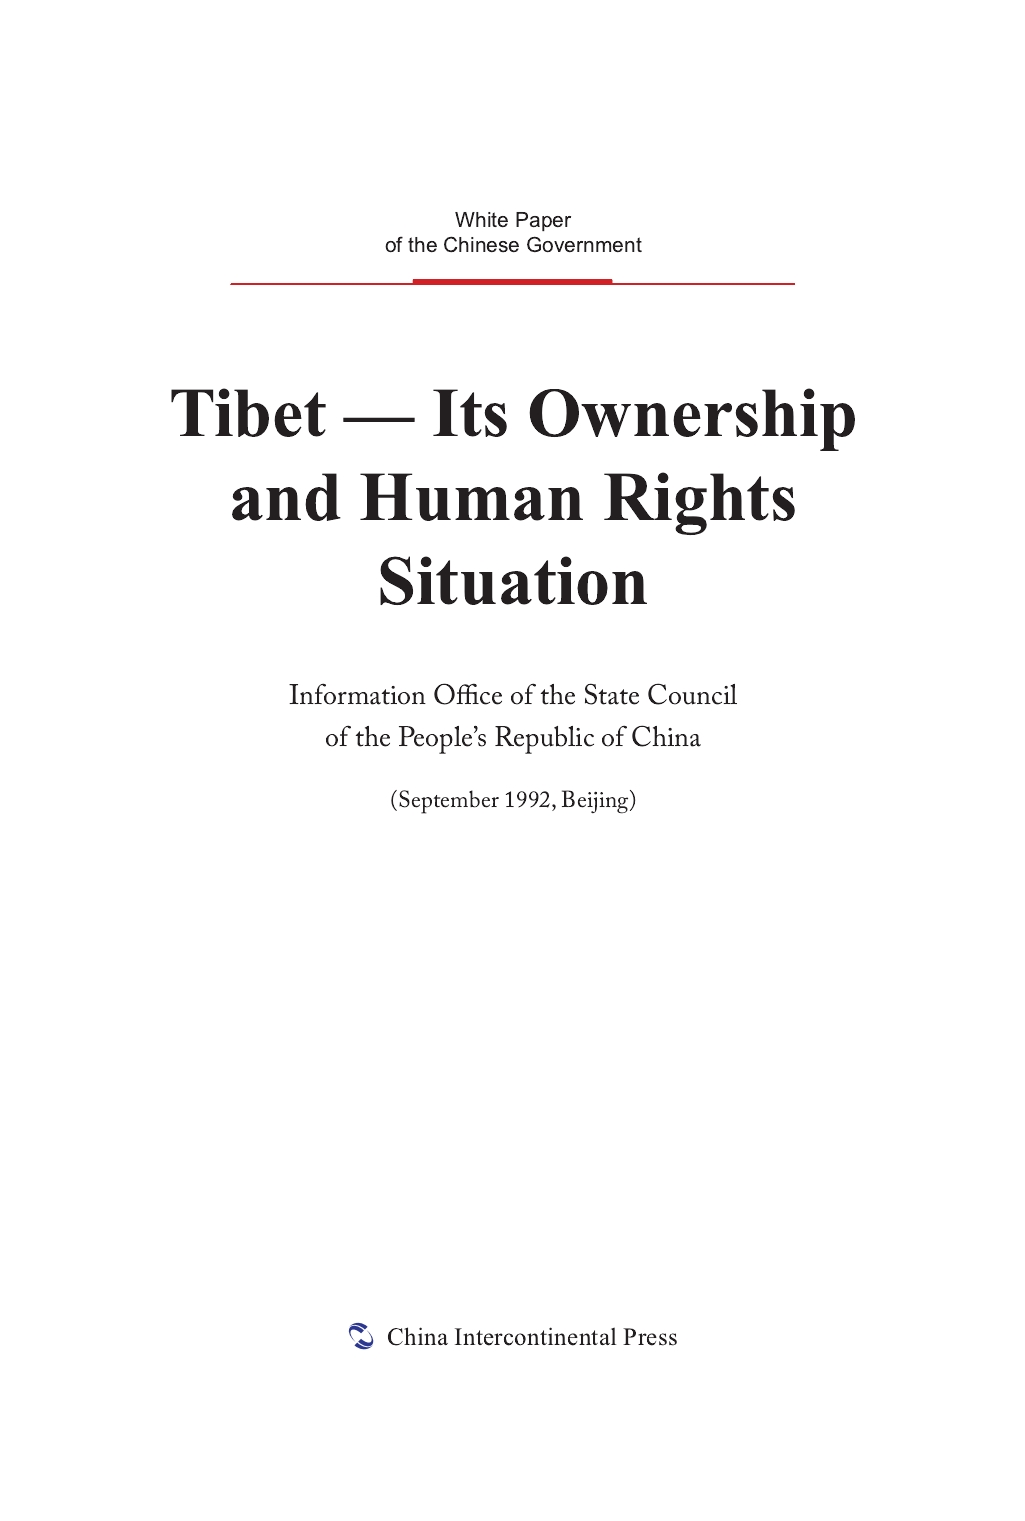 Tibet—Its Ownership and Human Rights Situation